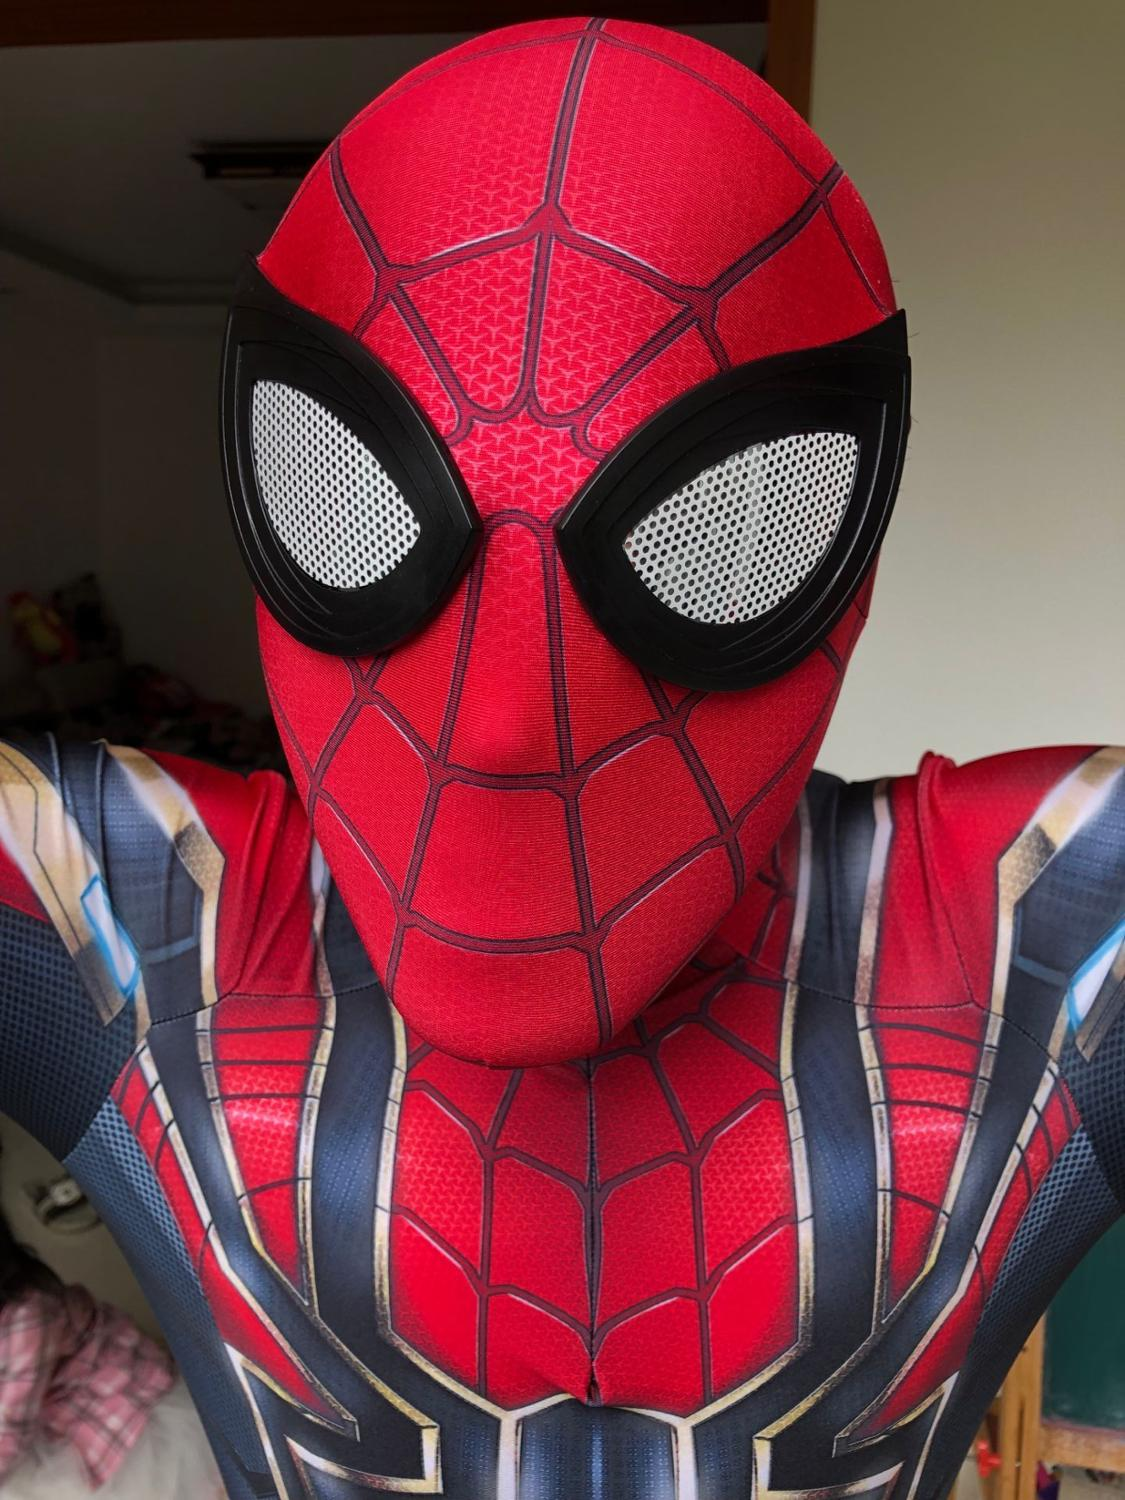 Iron Spiderman Costume 3d Print Halloween Cosplay Iron Spider Man